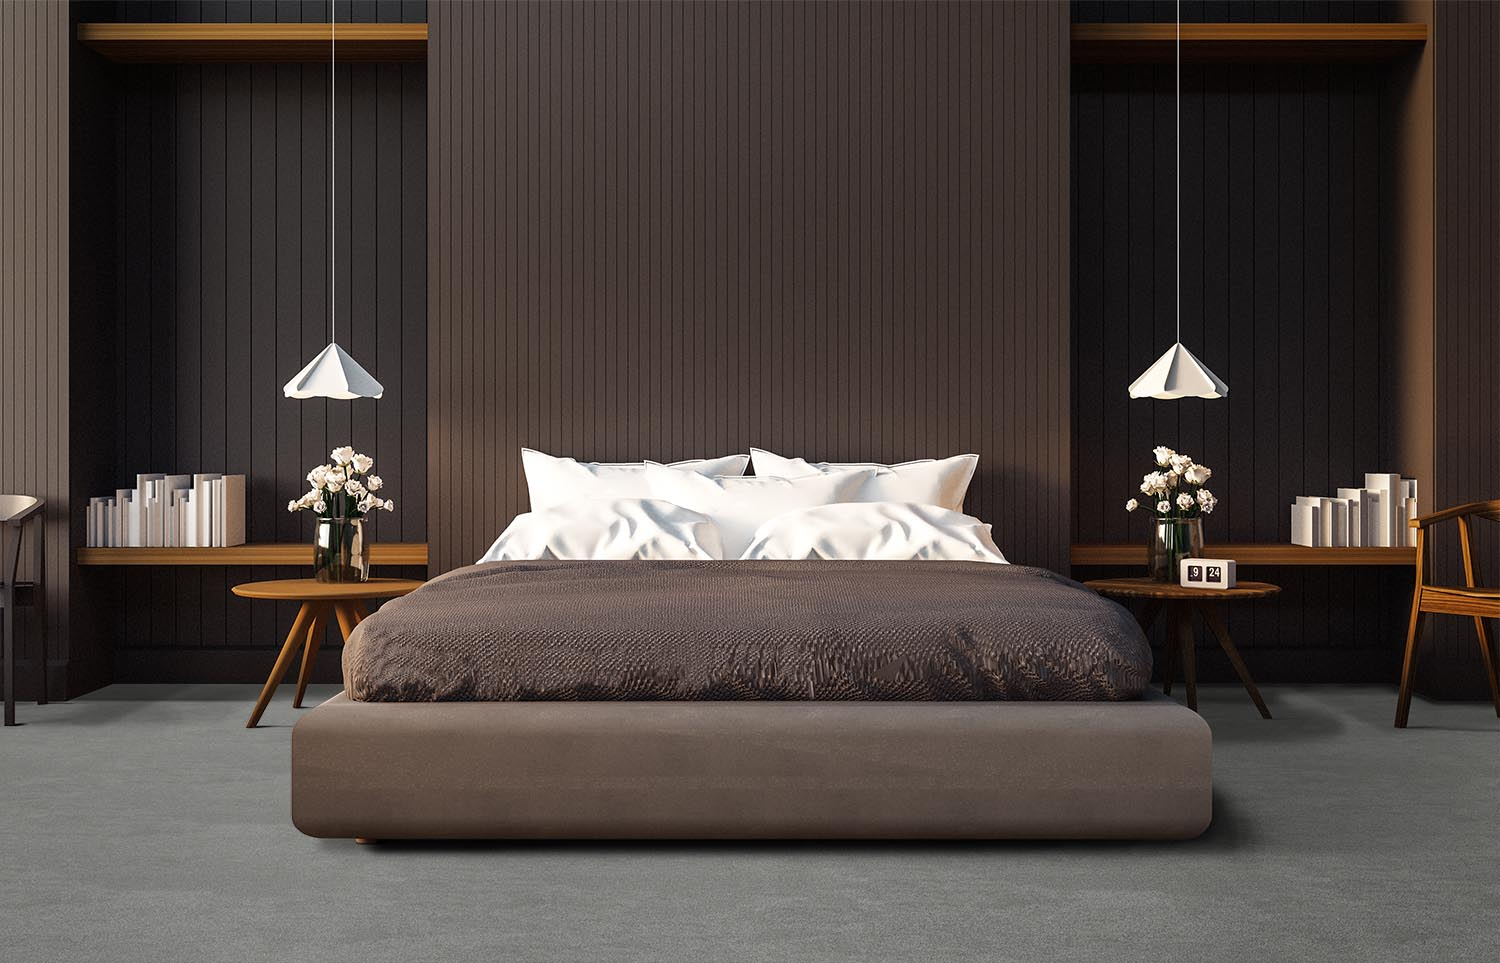 Softology - S301 - Brunia contemporary bedroom